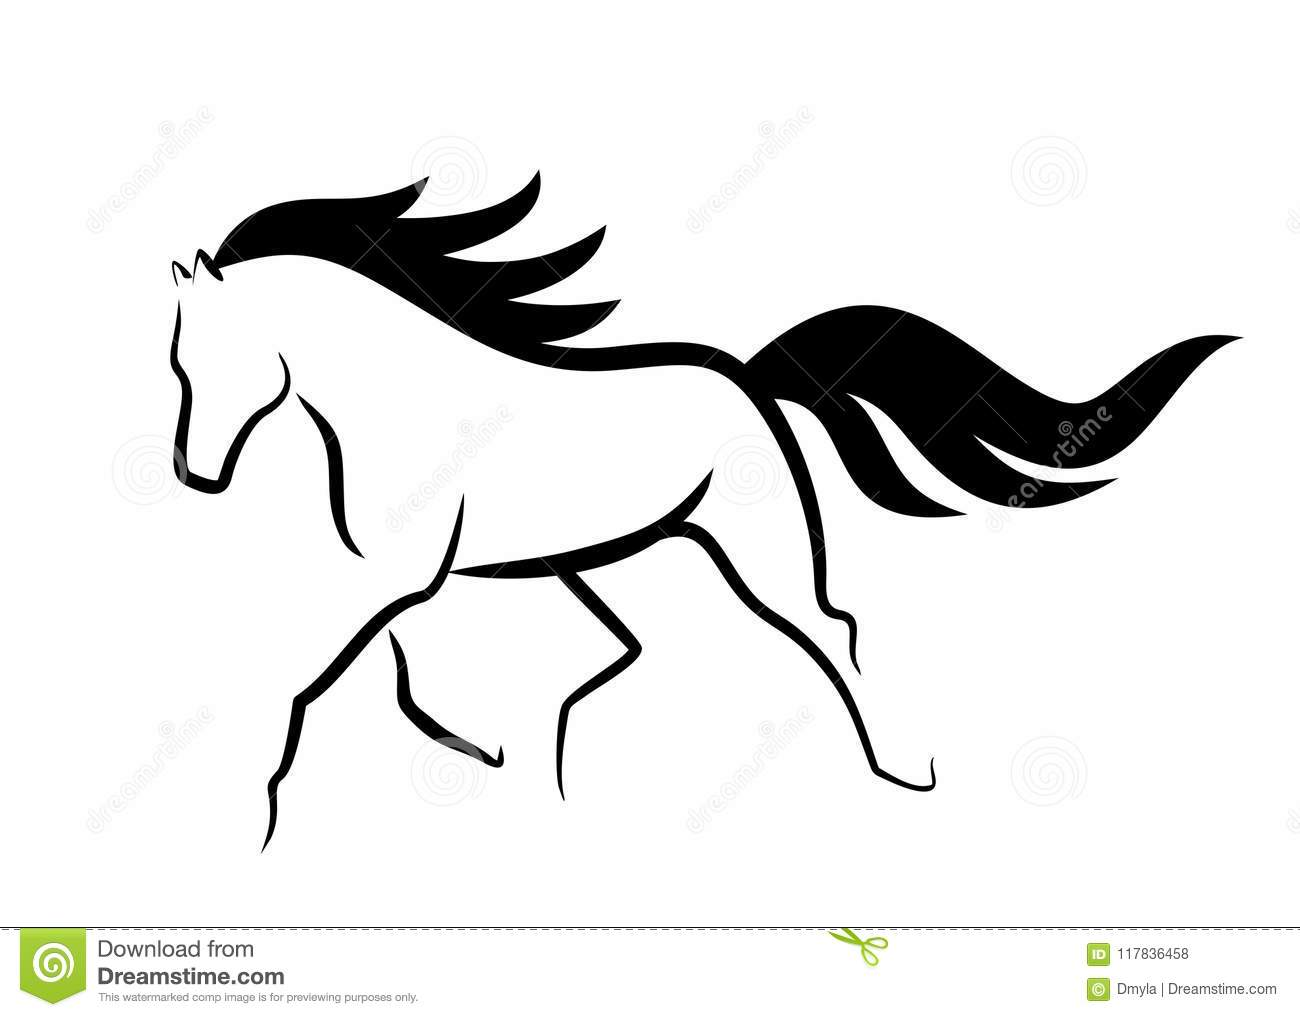 Sketch Horse Stock Illustrations 17 719 Sketch Horse Stock Illustrations Vectors Clipart Dreamstime